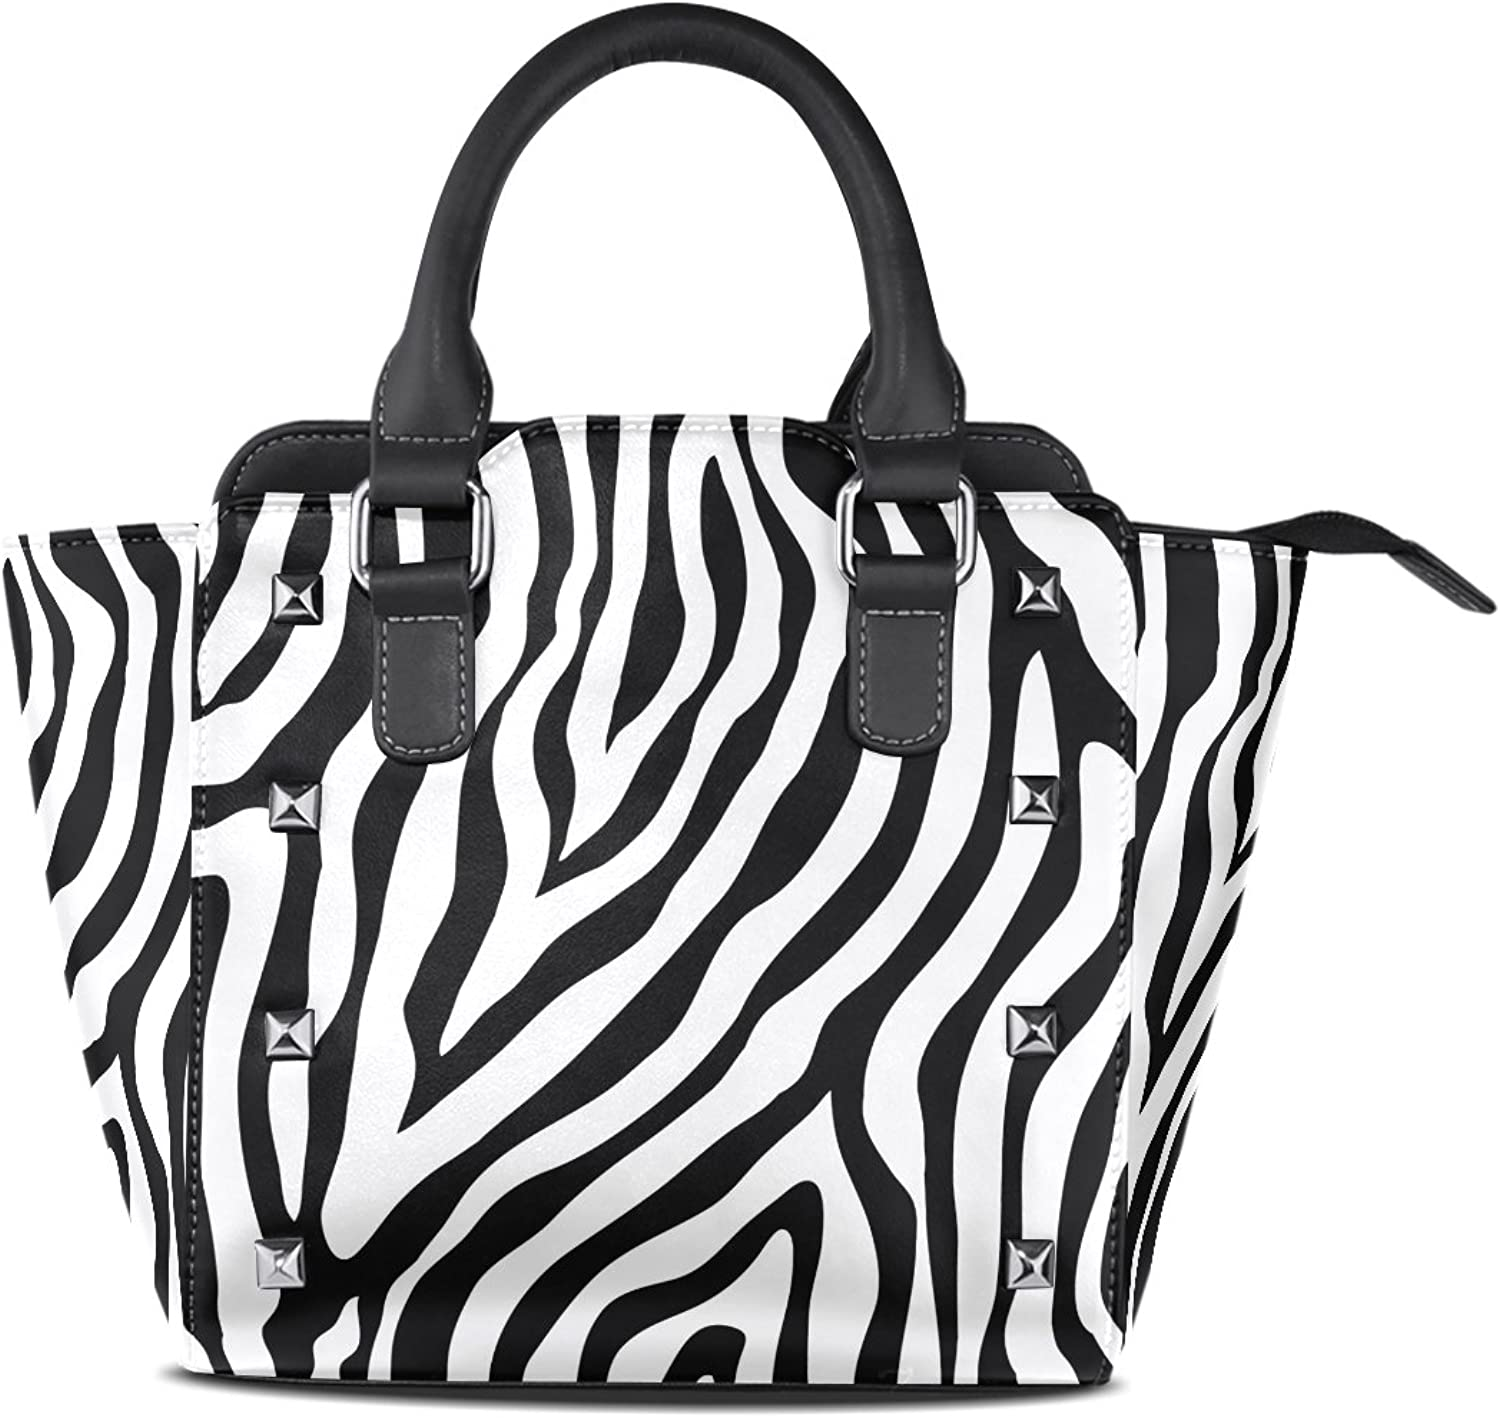 My Little Nest Women's Top Handle Satchel Handbag Zebra Skin Print Ladies PU Leather Shoulder Bag Crossbody Bag